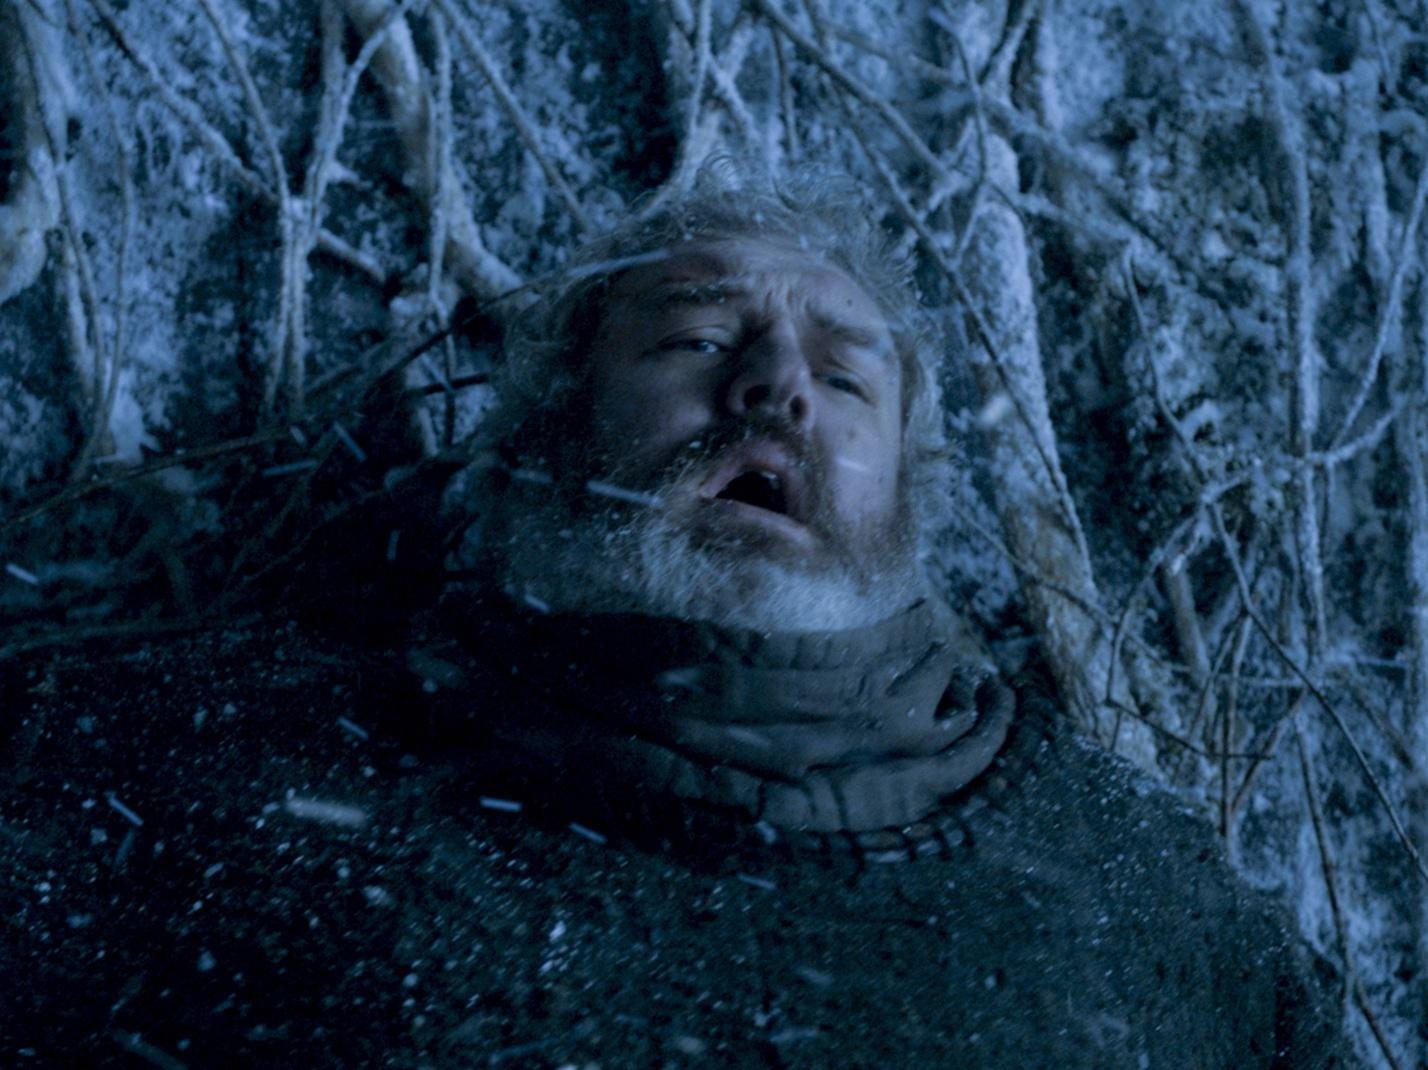 C:\Users\user\Desktop\Reacho\pics\hodor game of thrones .jpg